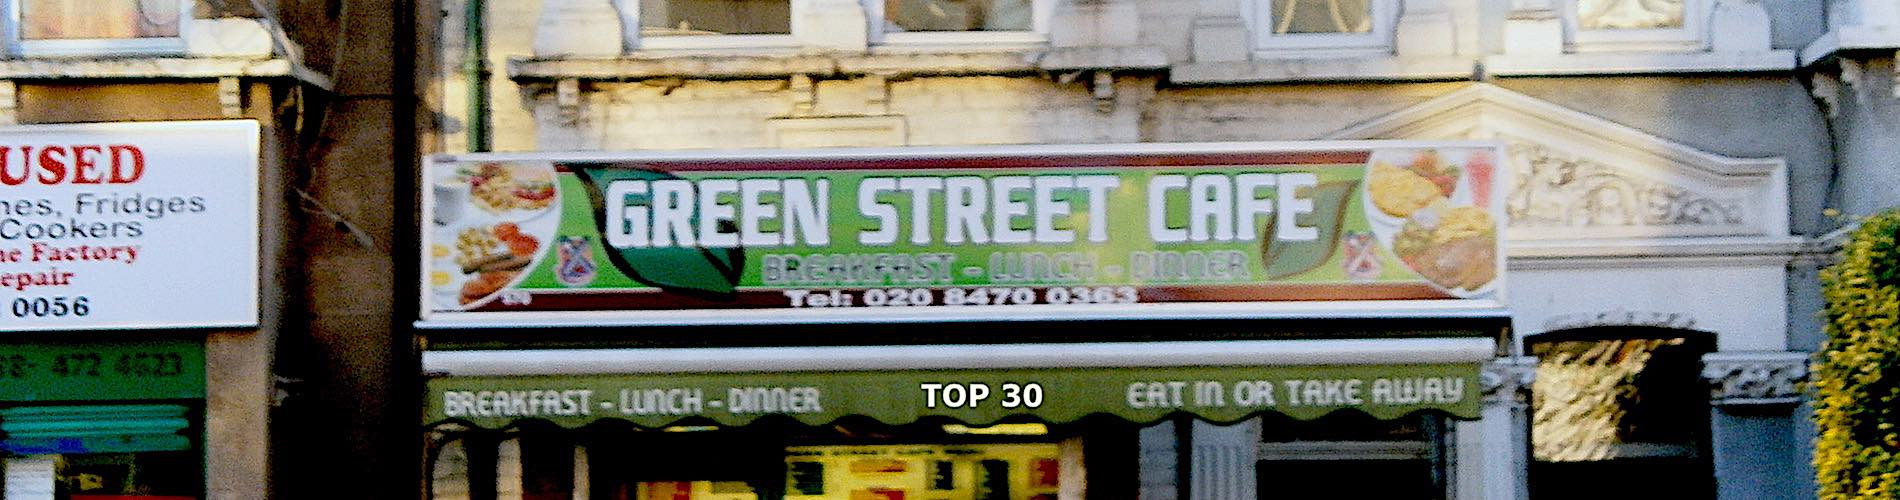 Indie30-Green-St-Cafe-copy-2